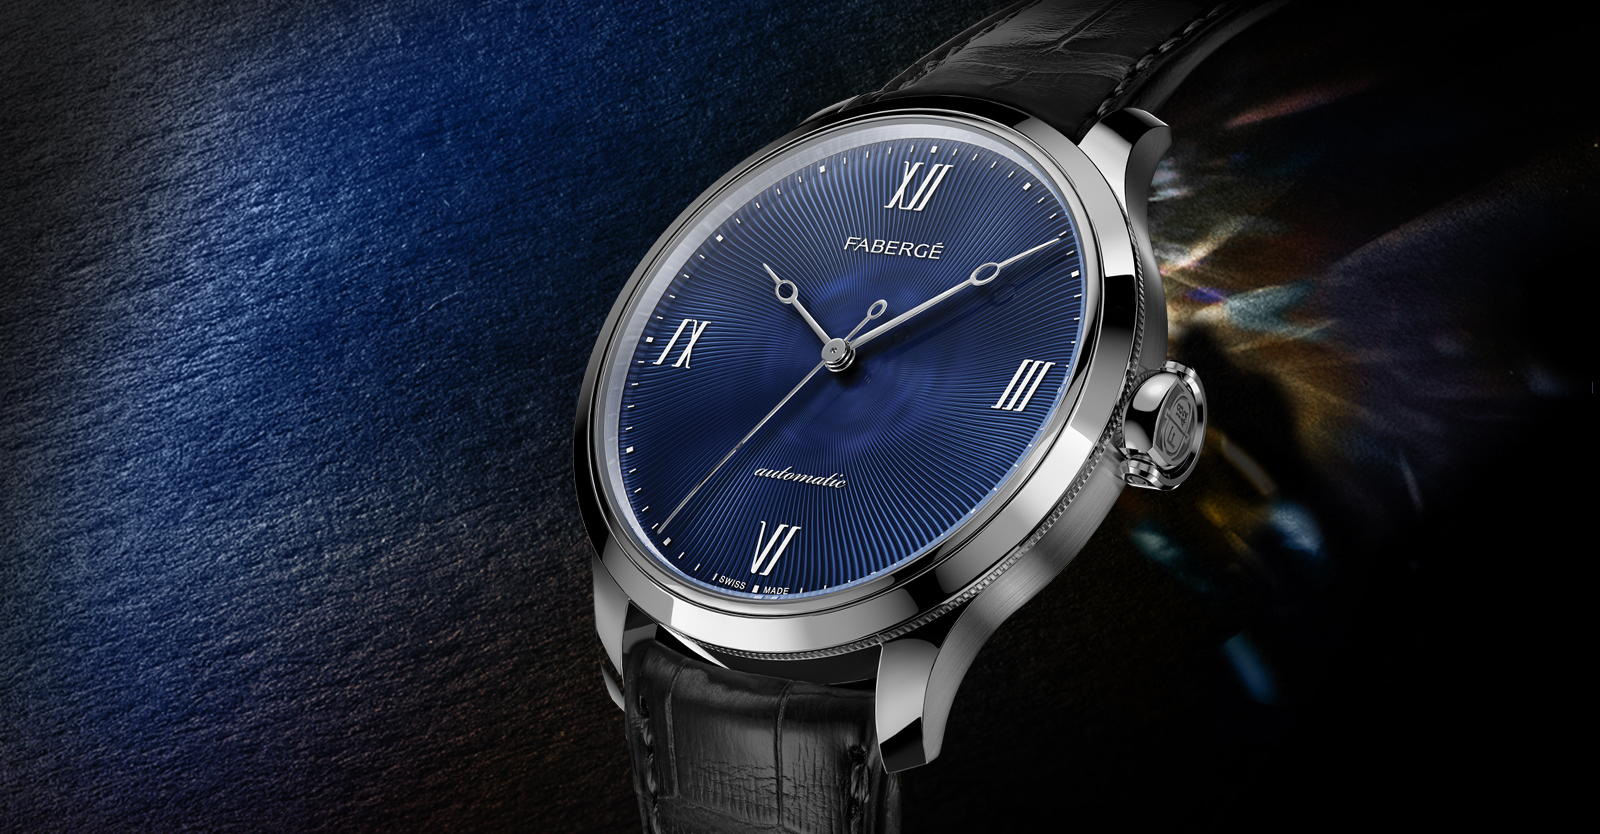 Men's timepiece from the Fabergé Altruist Collection.